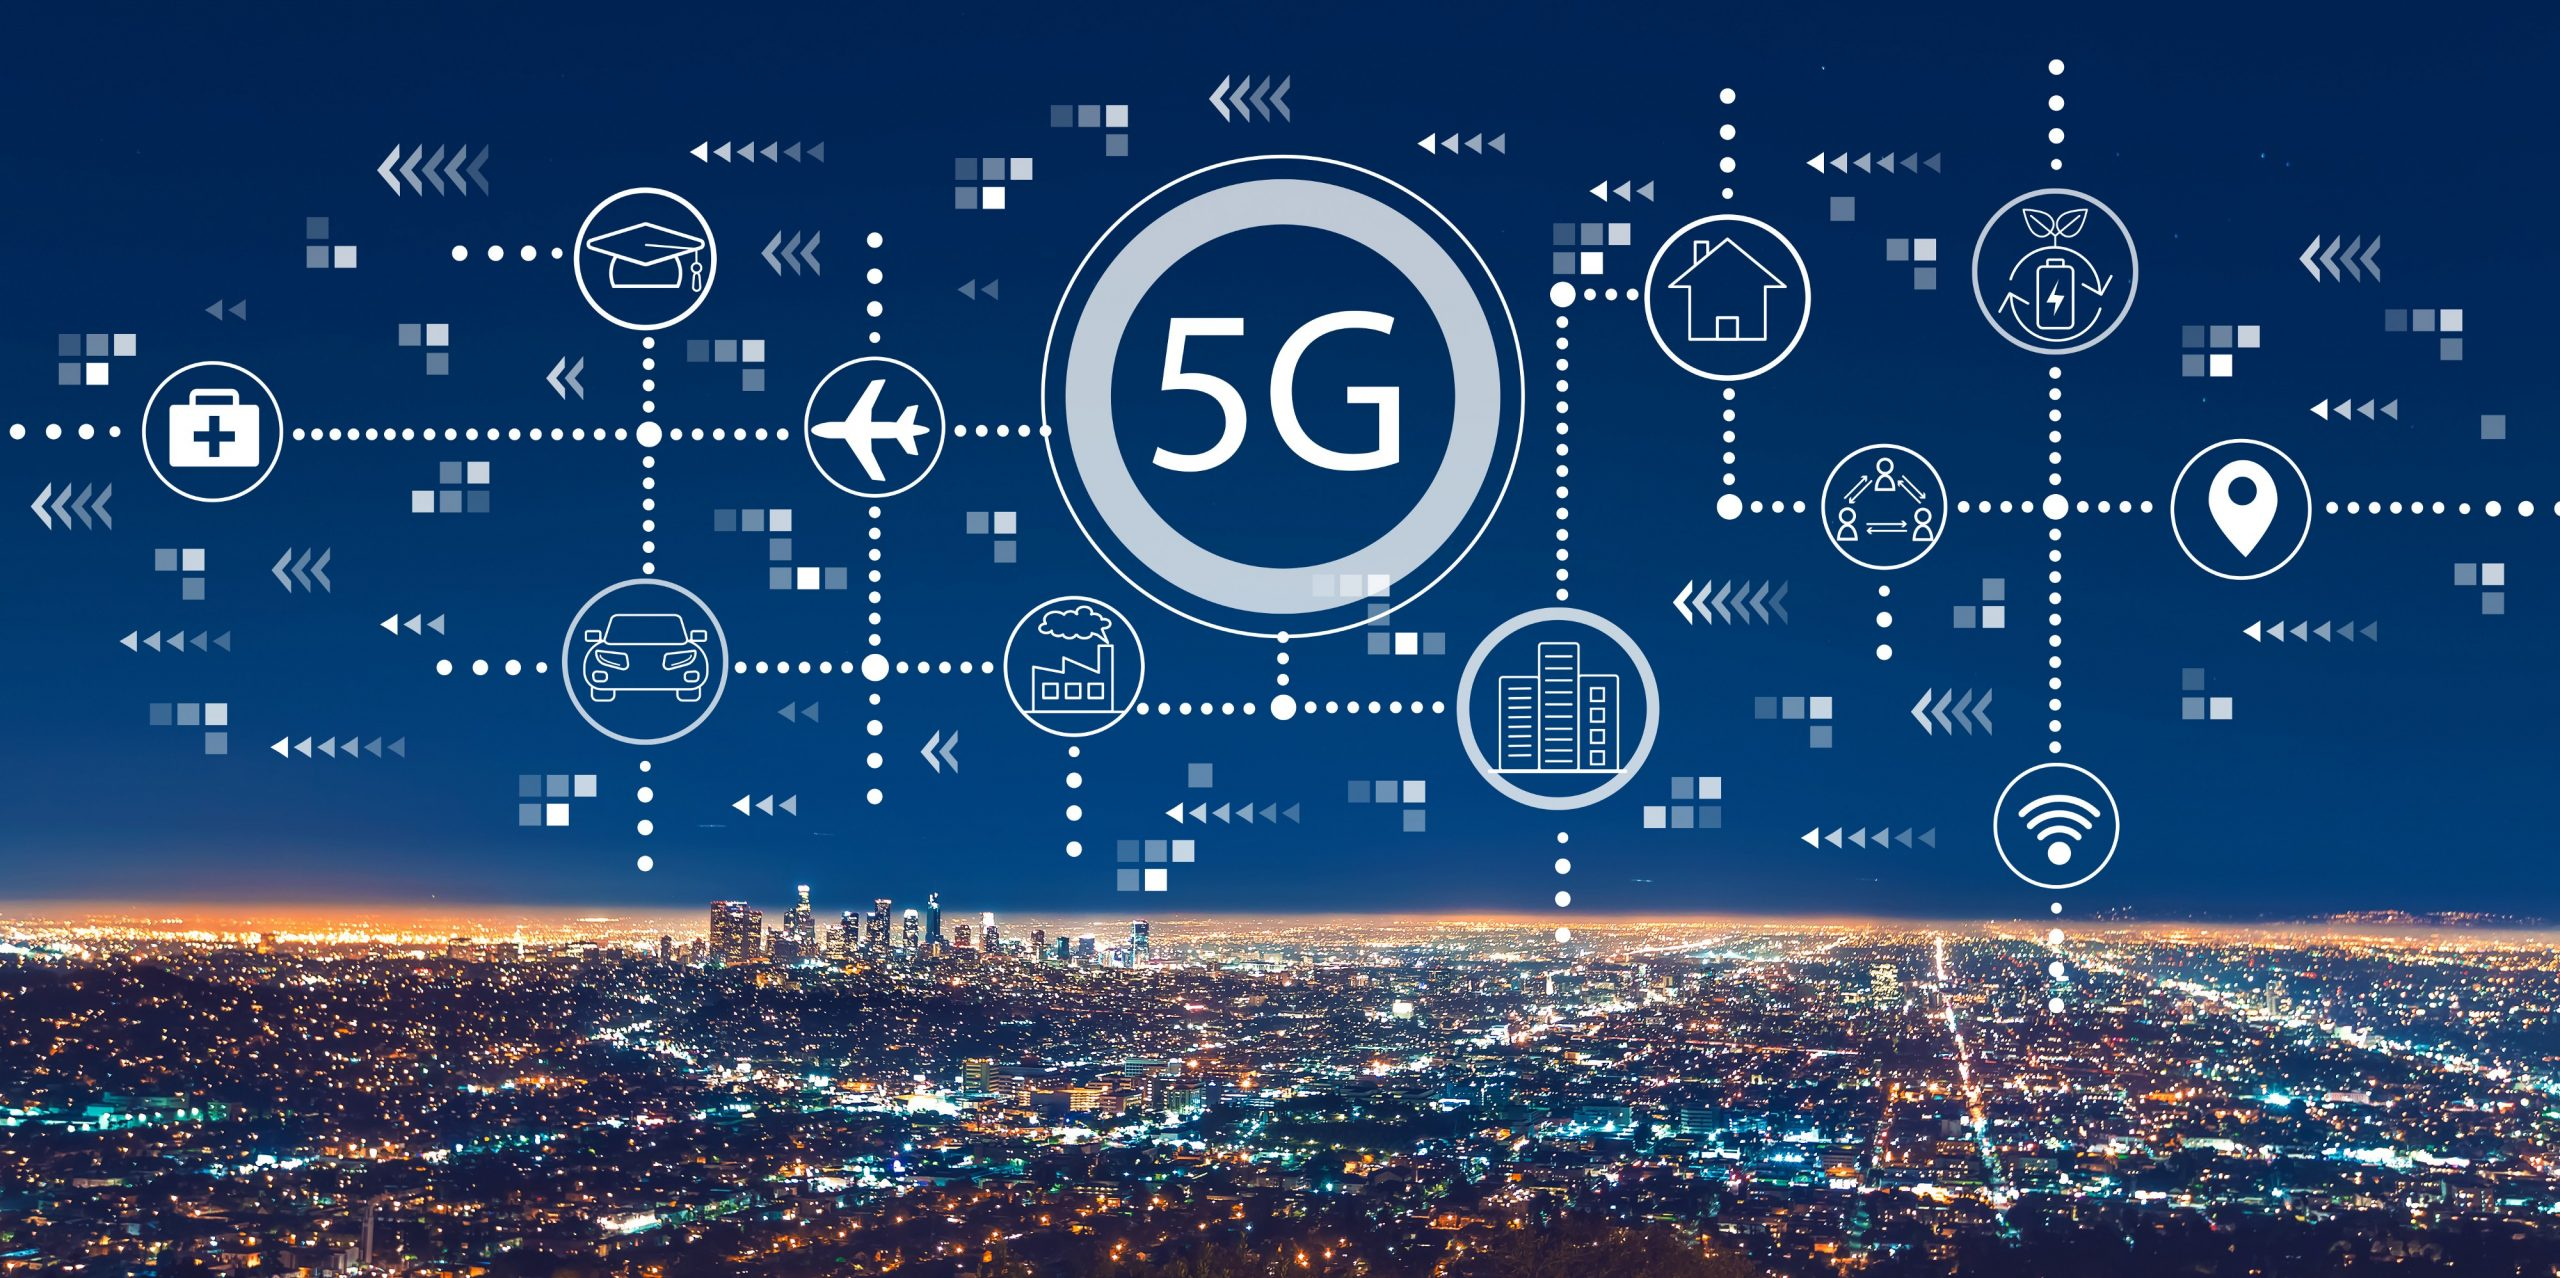 what is 5G and is it bad or good